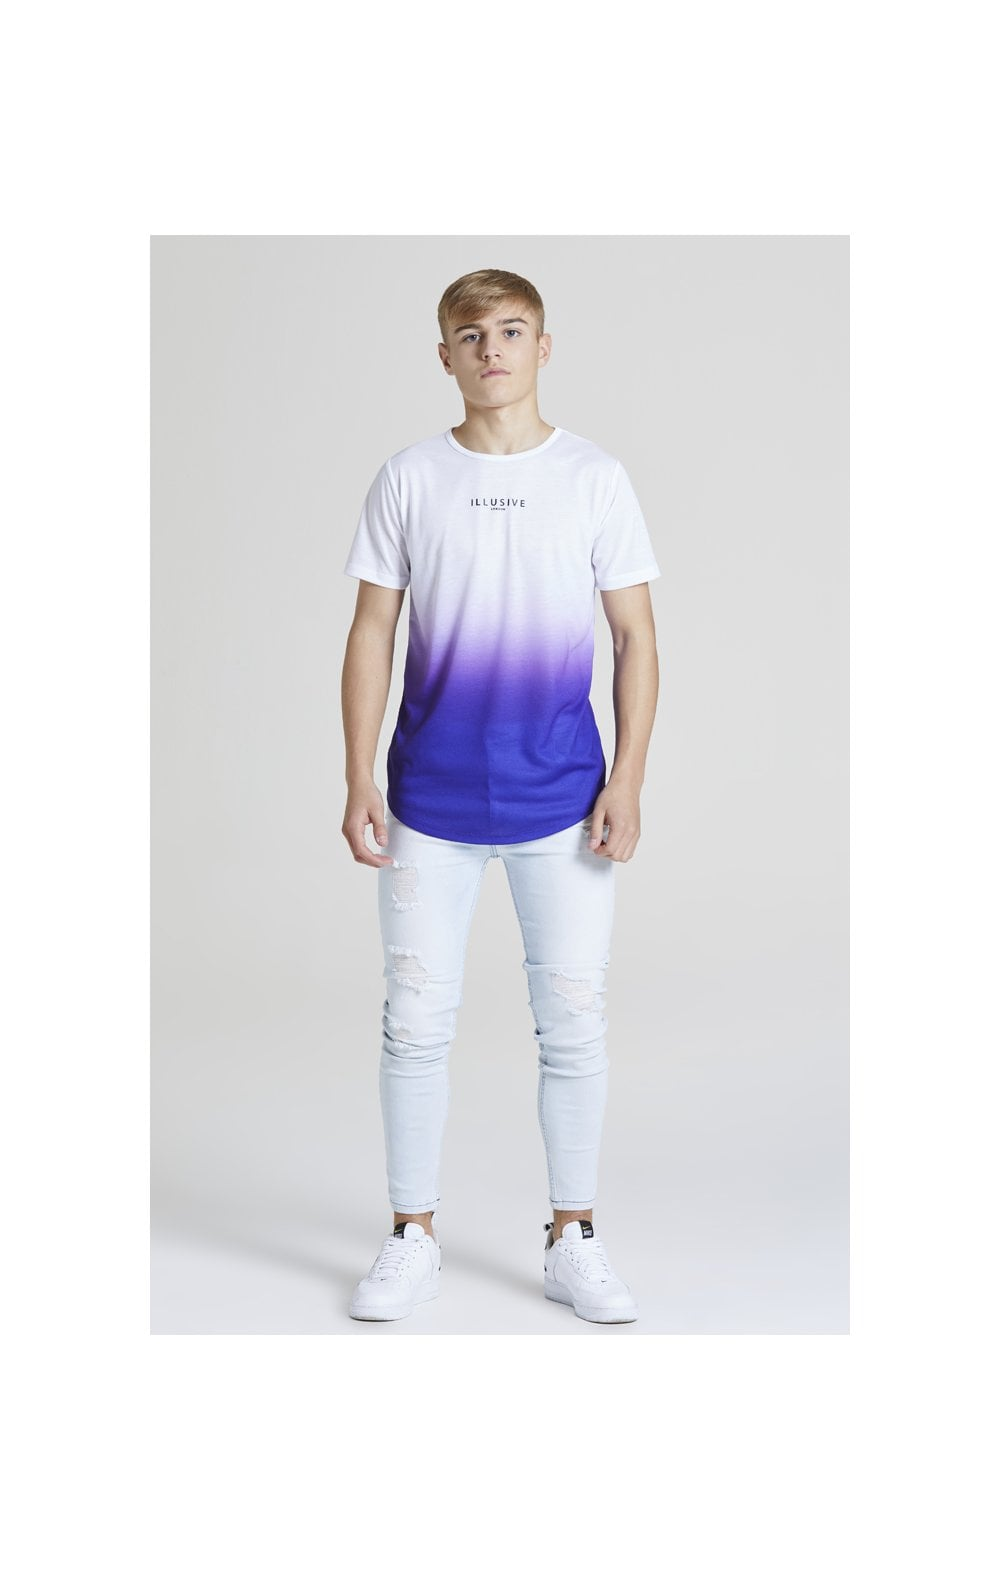 Load image into Gallery viewer, Illusive London Core Fade Tee – White & Purple (4)